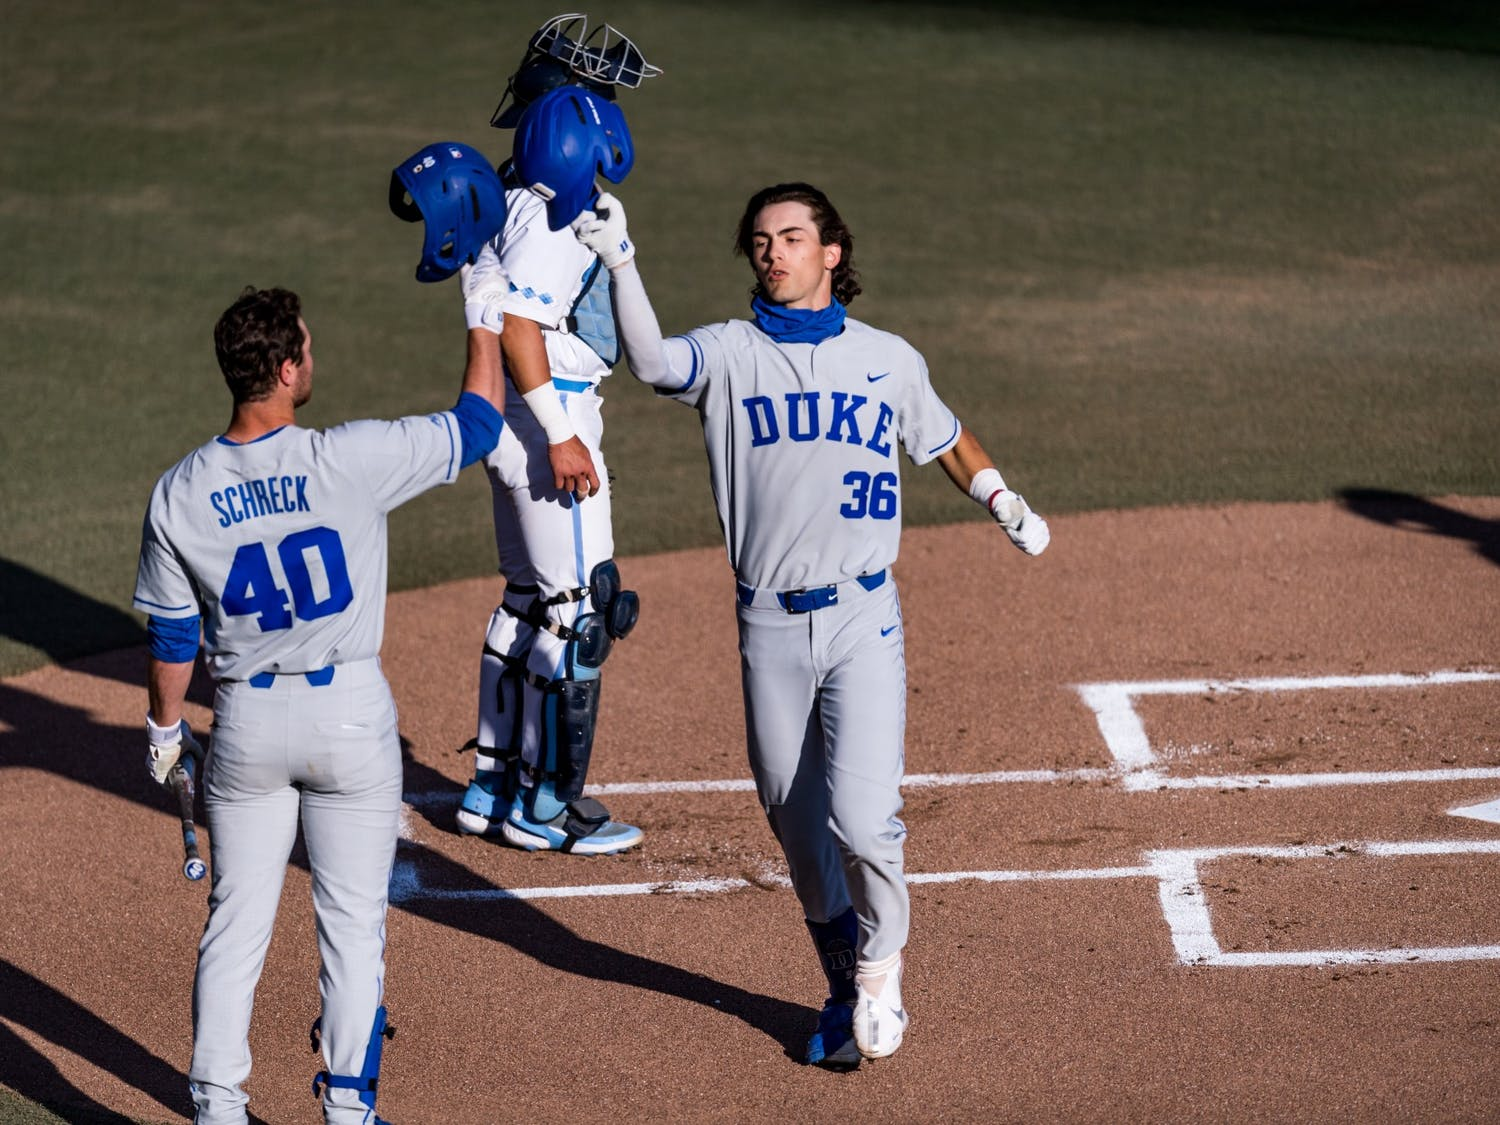 Joey Loperfido and RJ Schreck boast .336 and .317 batting averages thus far, respectively.